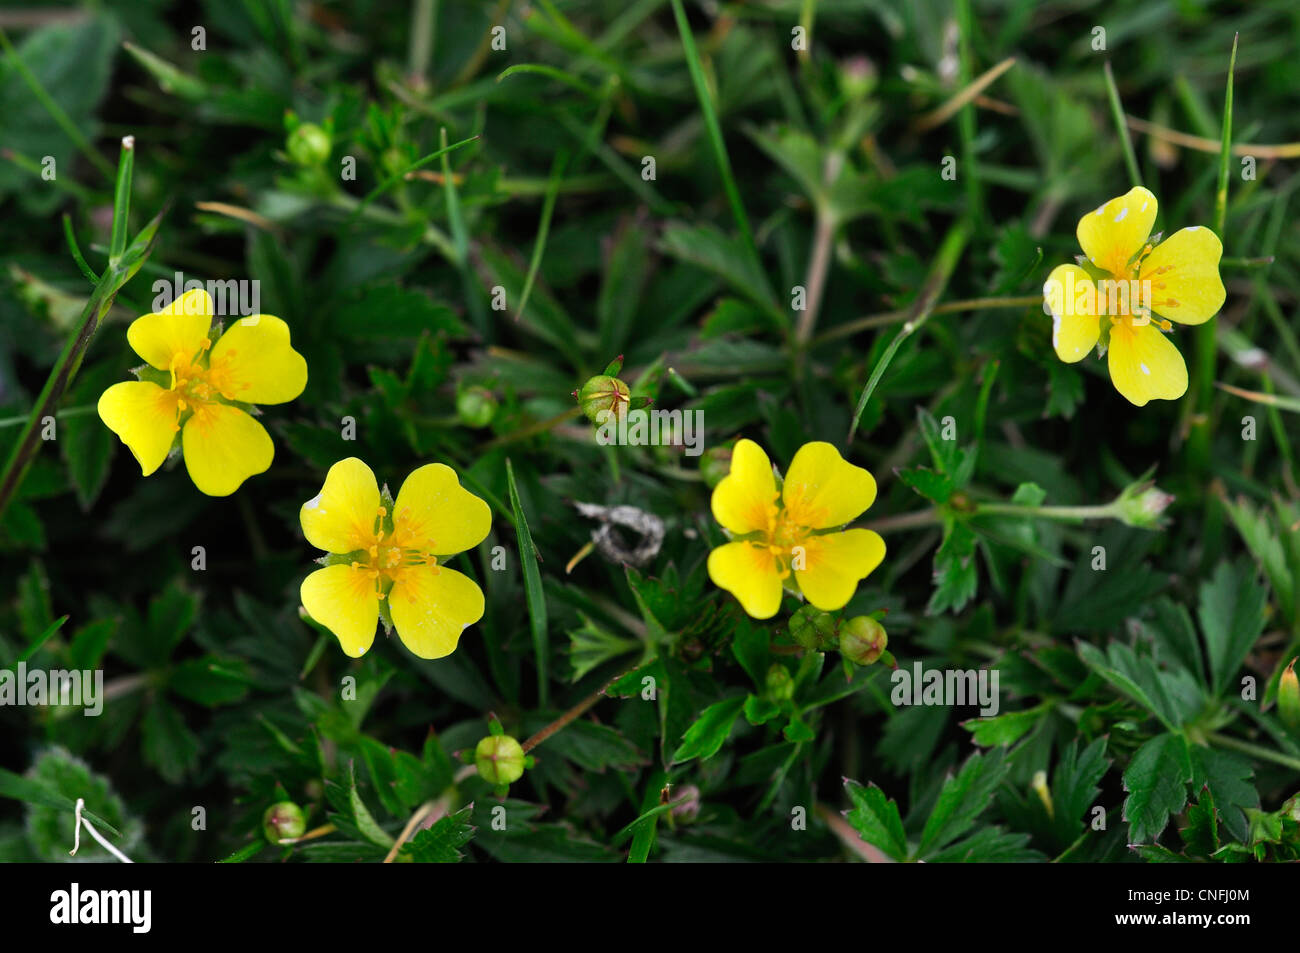 Four flowers of tormentil a wild flower uk stock photo 47671924 four flowers of tormentil a wild flower uk mightylinksfo